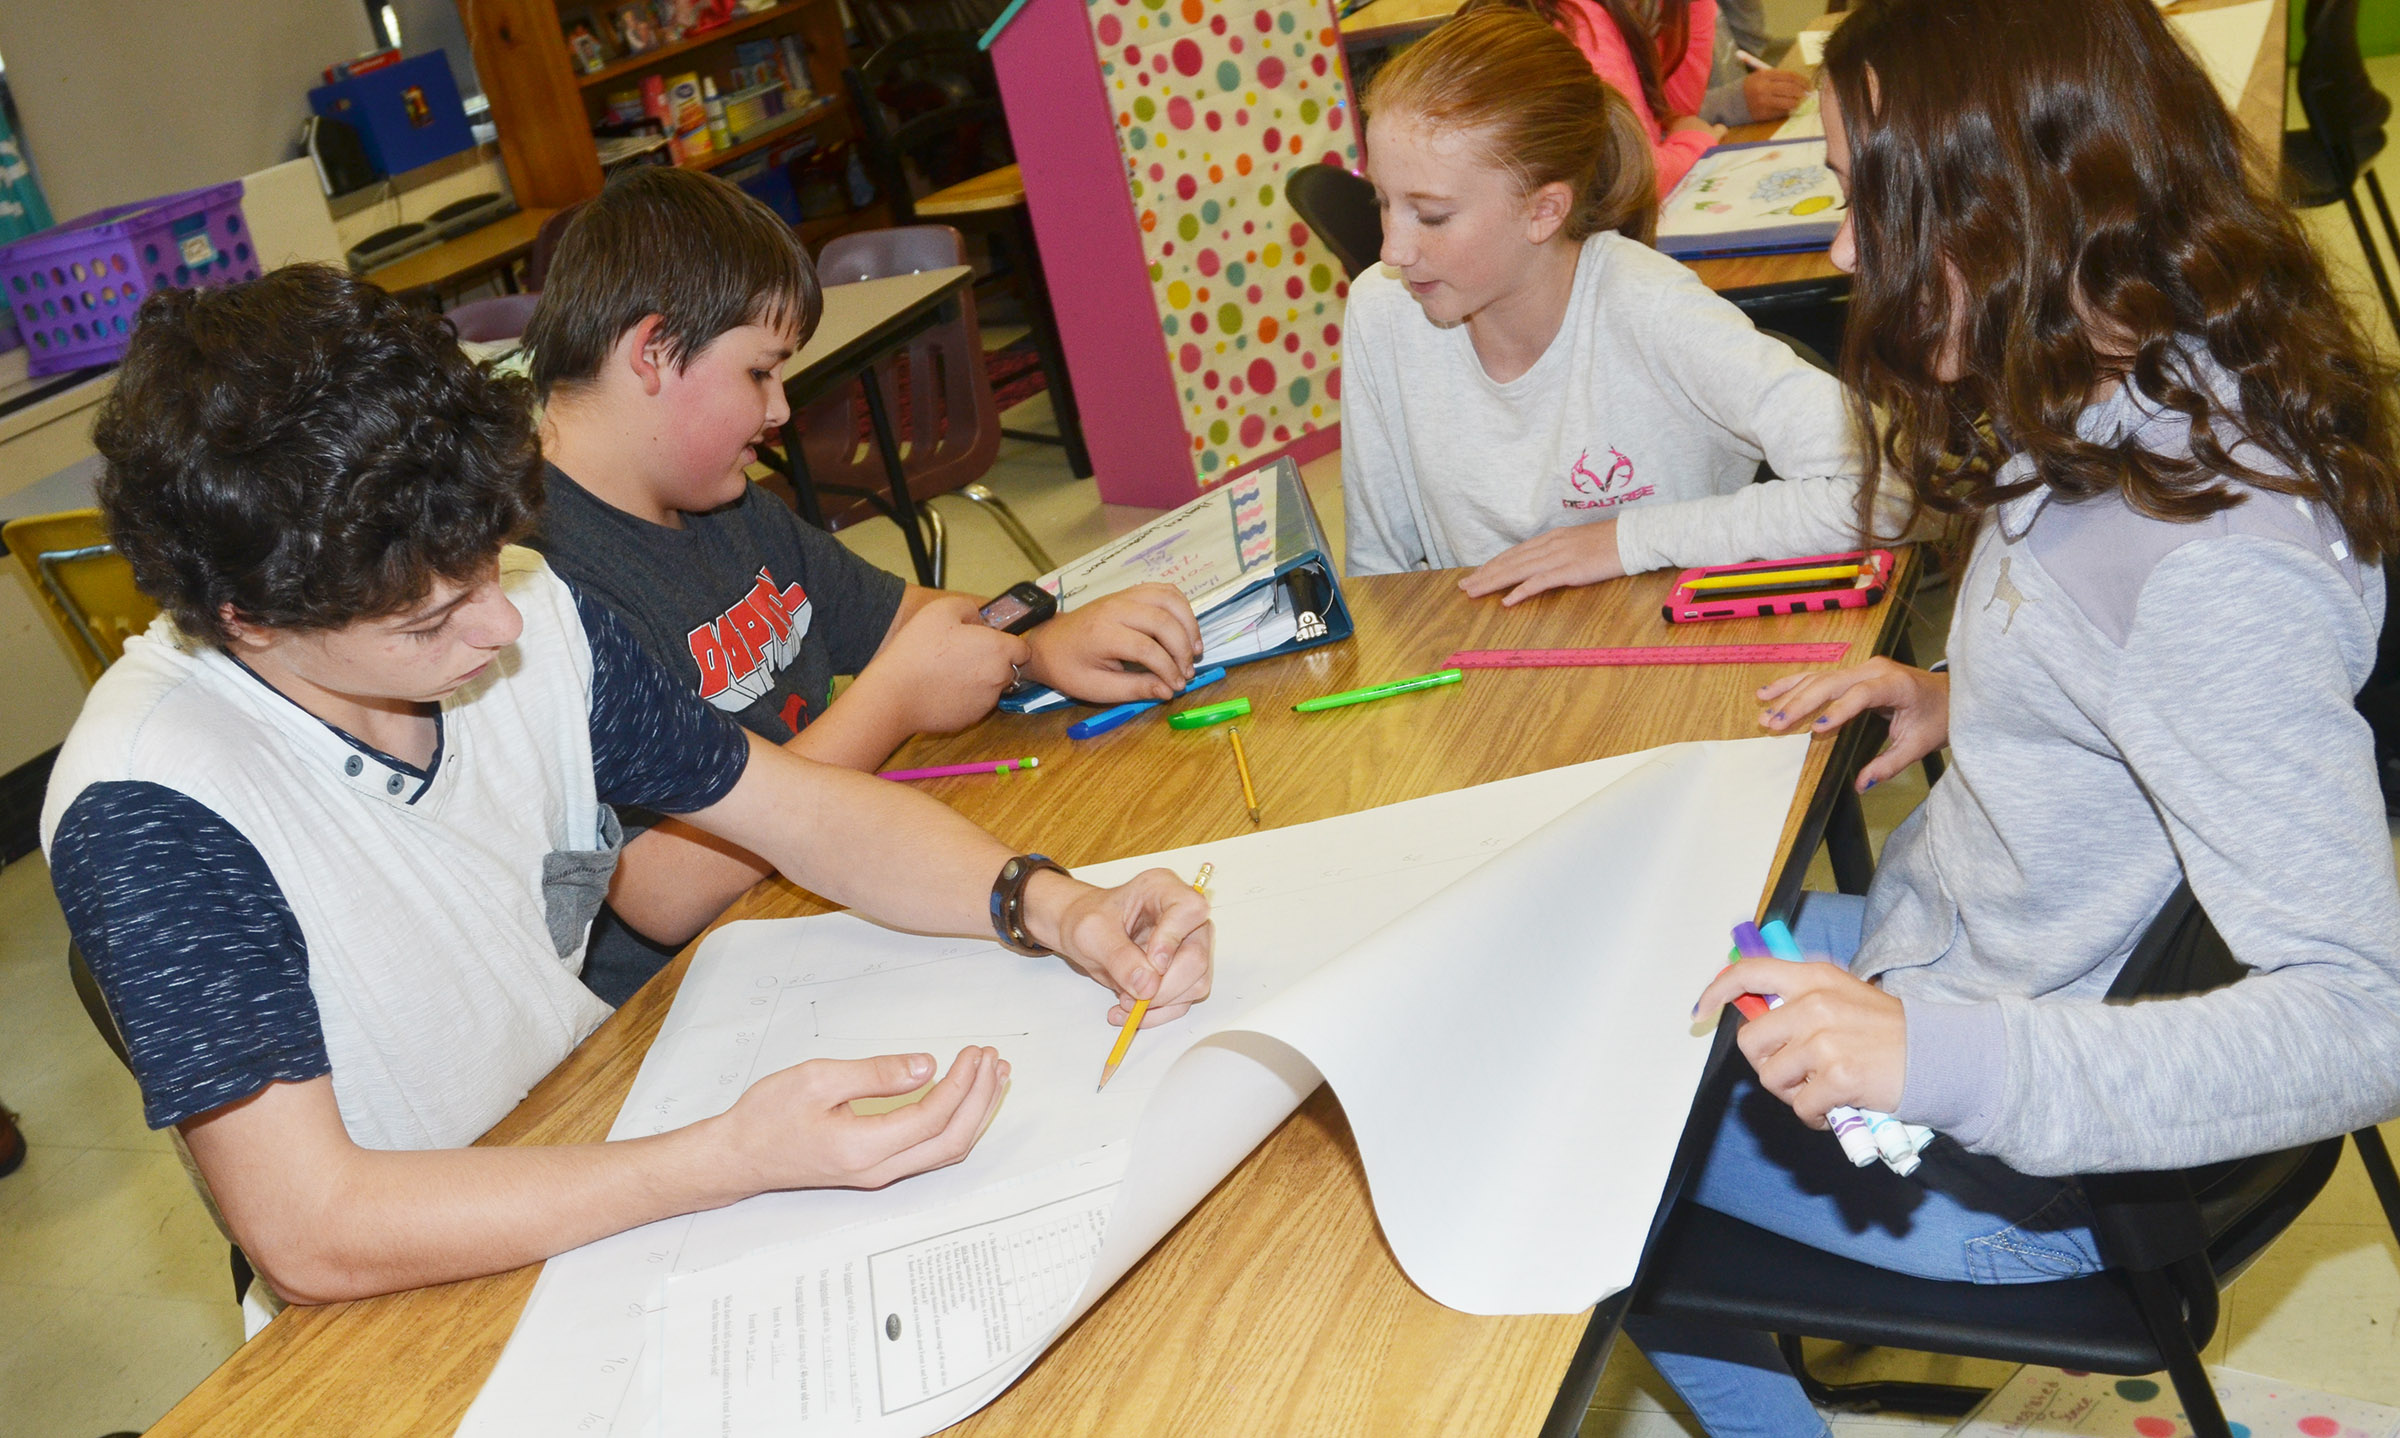 From left, CMS eighth-graders C.J. Adams, Kaine Terry, Hayley Wethington and Chloe Anderson work on their graph.